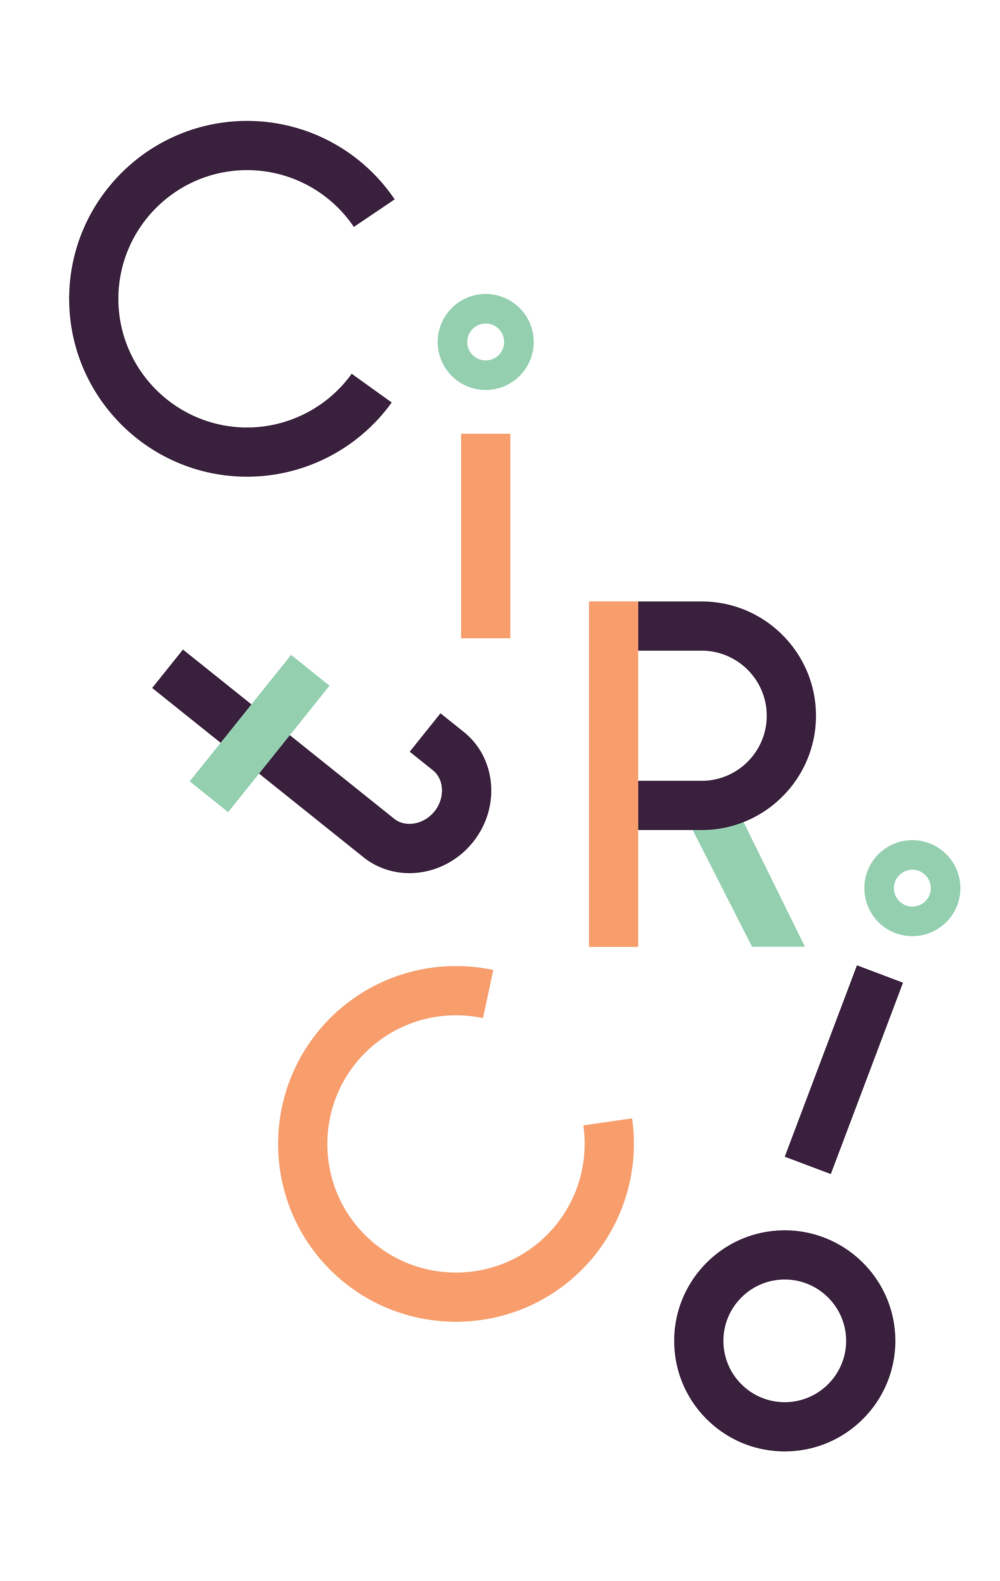 Citrico_Final_logos_stacked-07.png